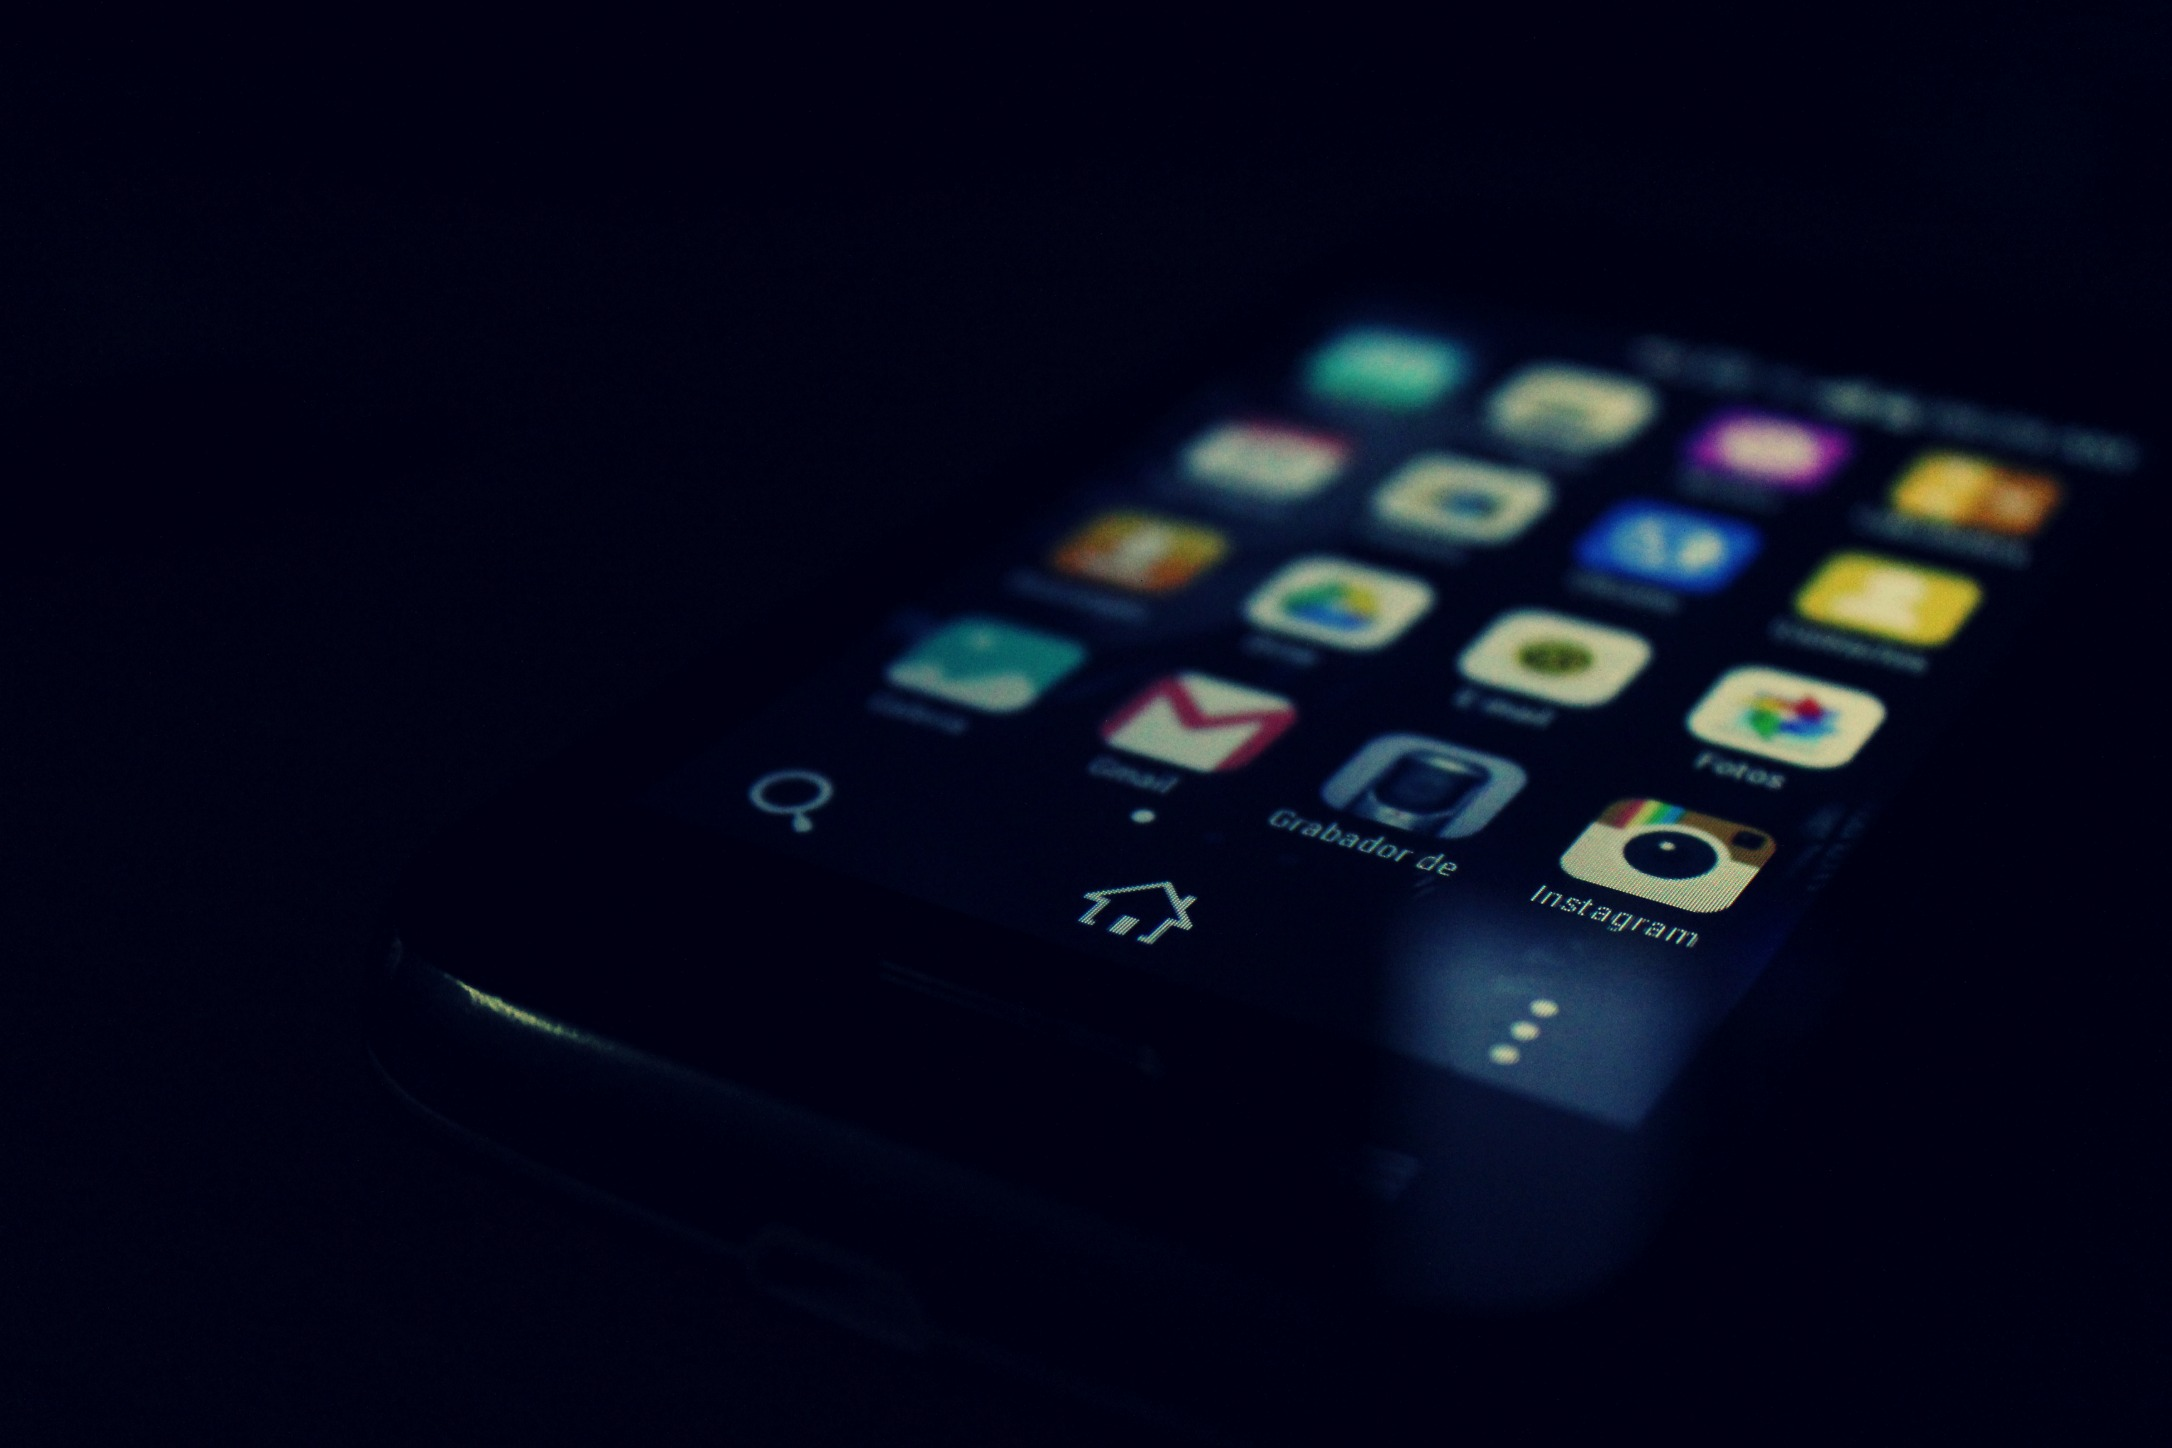 Technology can destroy our sleep patterns. Keep your phone and digital devices away from your bed or in another room.